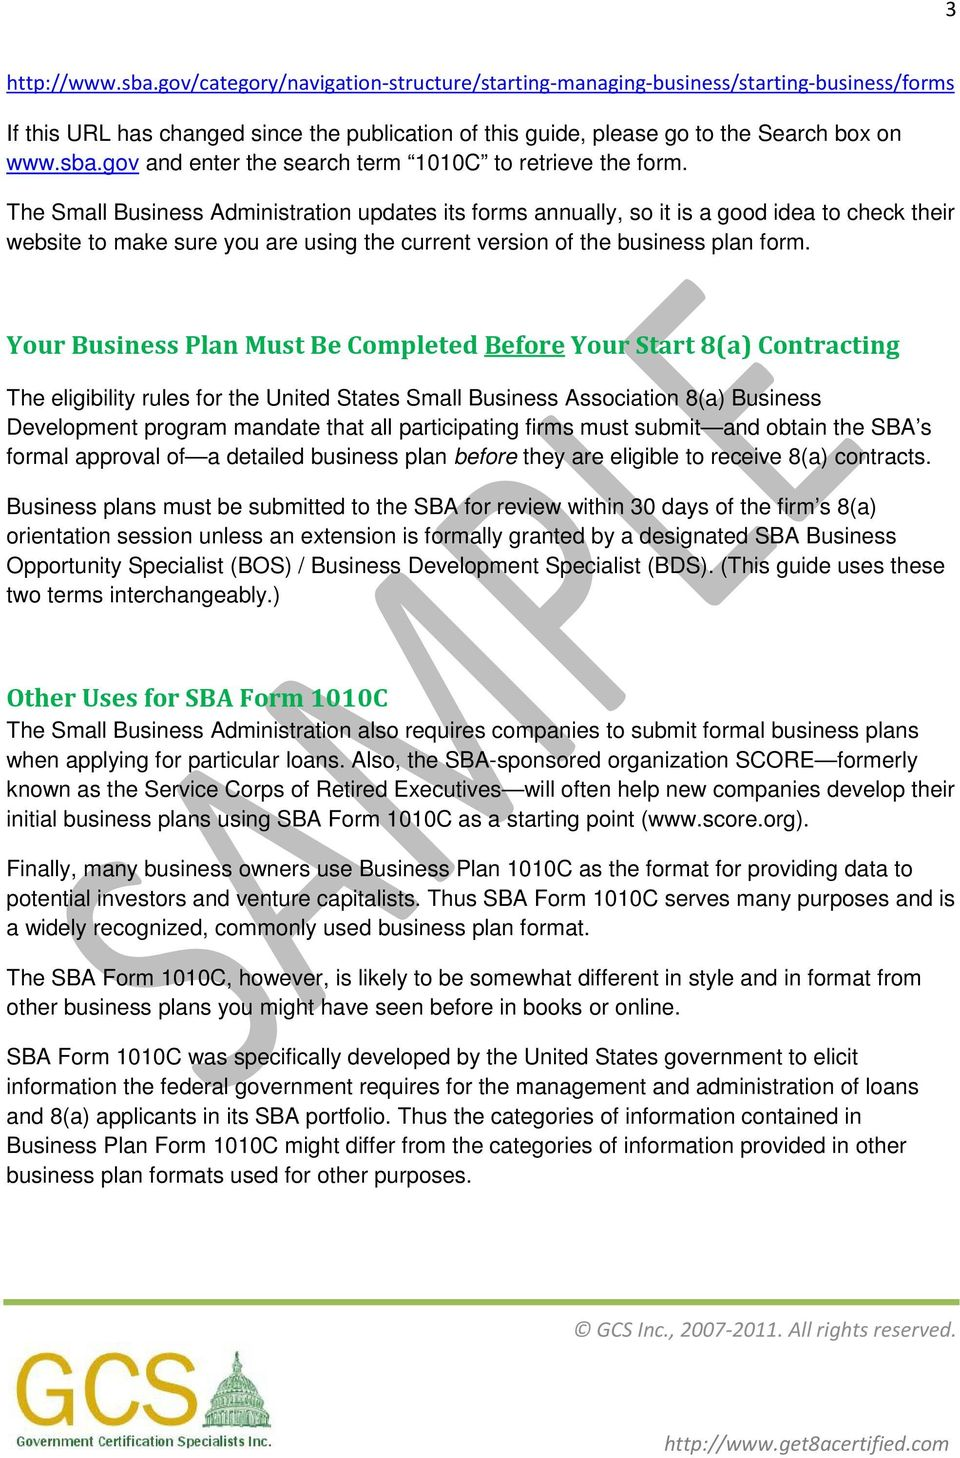 Small business administration sba business plan instruction guide the small business administration updates its forms annually so it is a good idea to wajeb